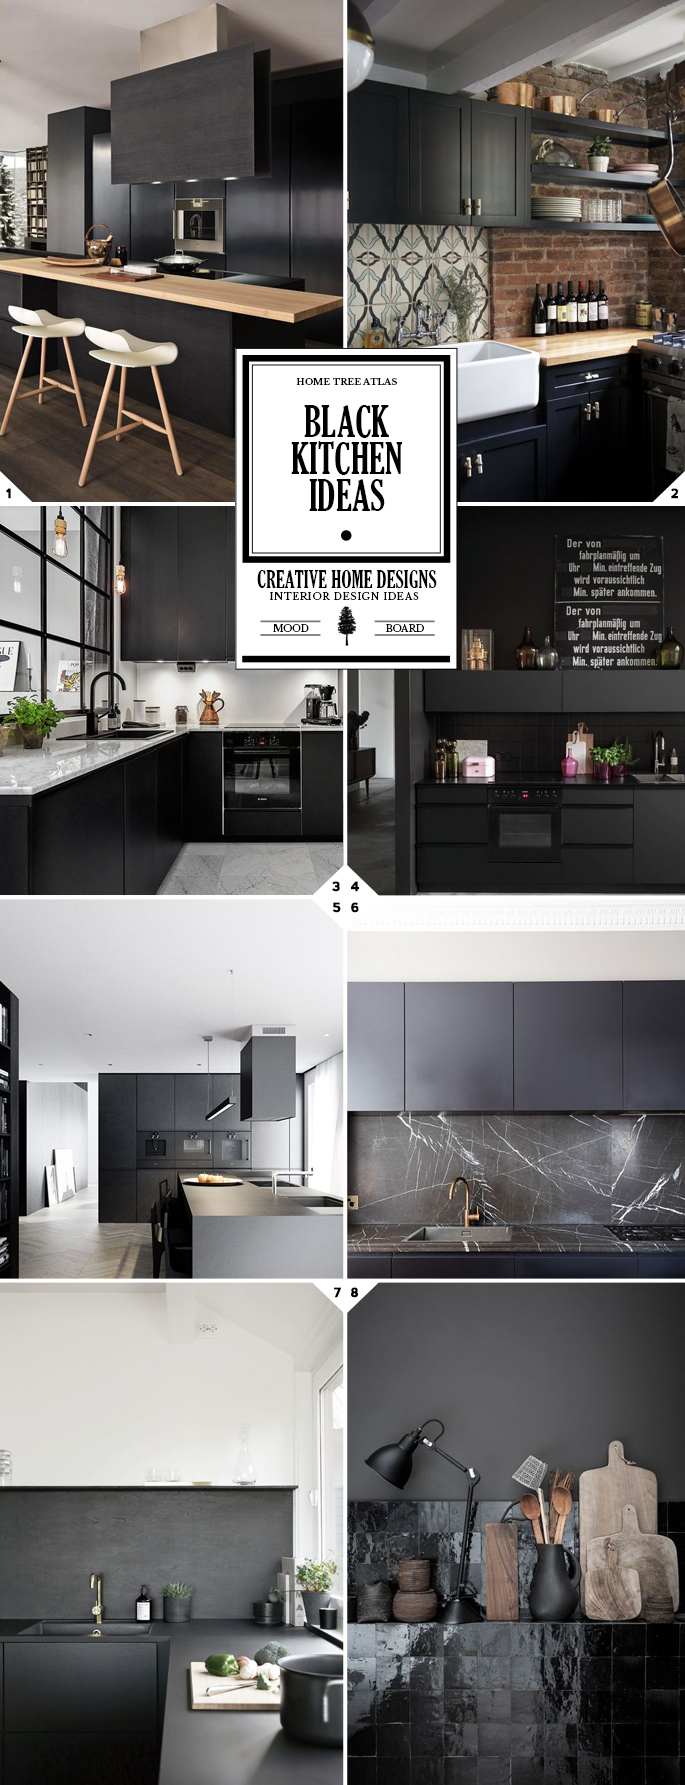 A different style black kitchen ideas and designs home for Different kitchen design ideas